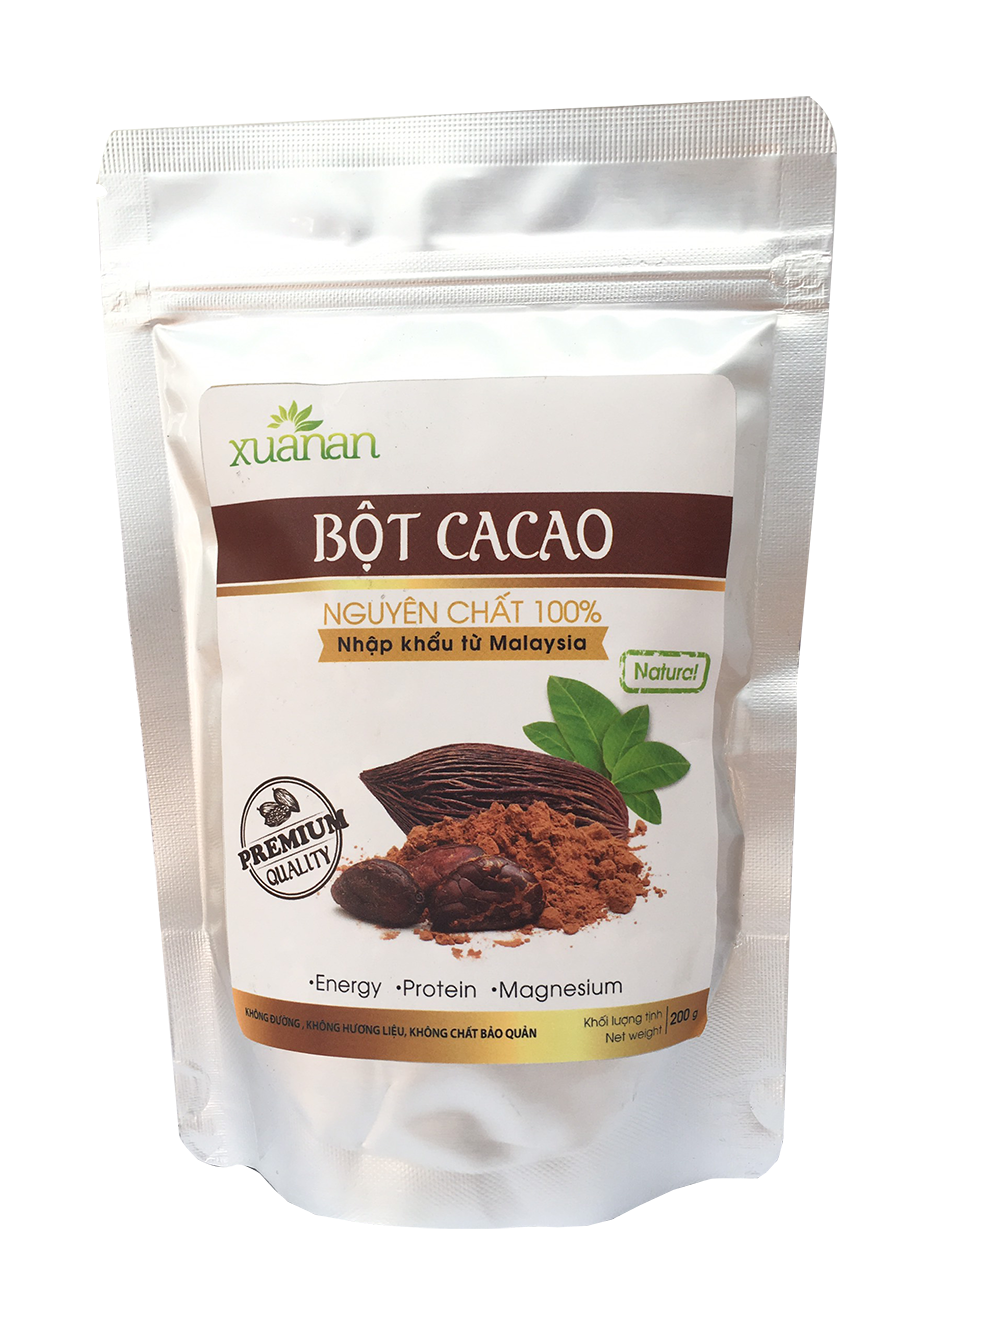 Bột cacao Malaysia (Ảnh 1)